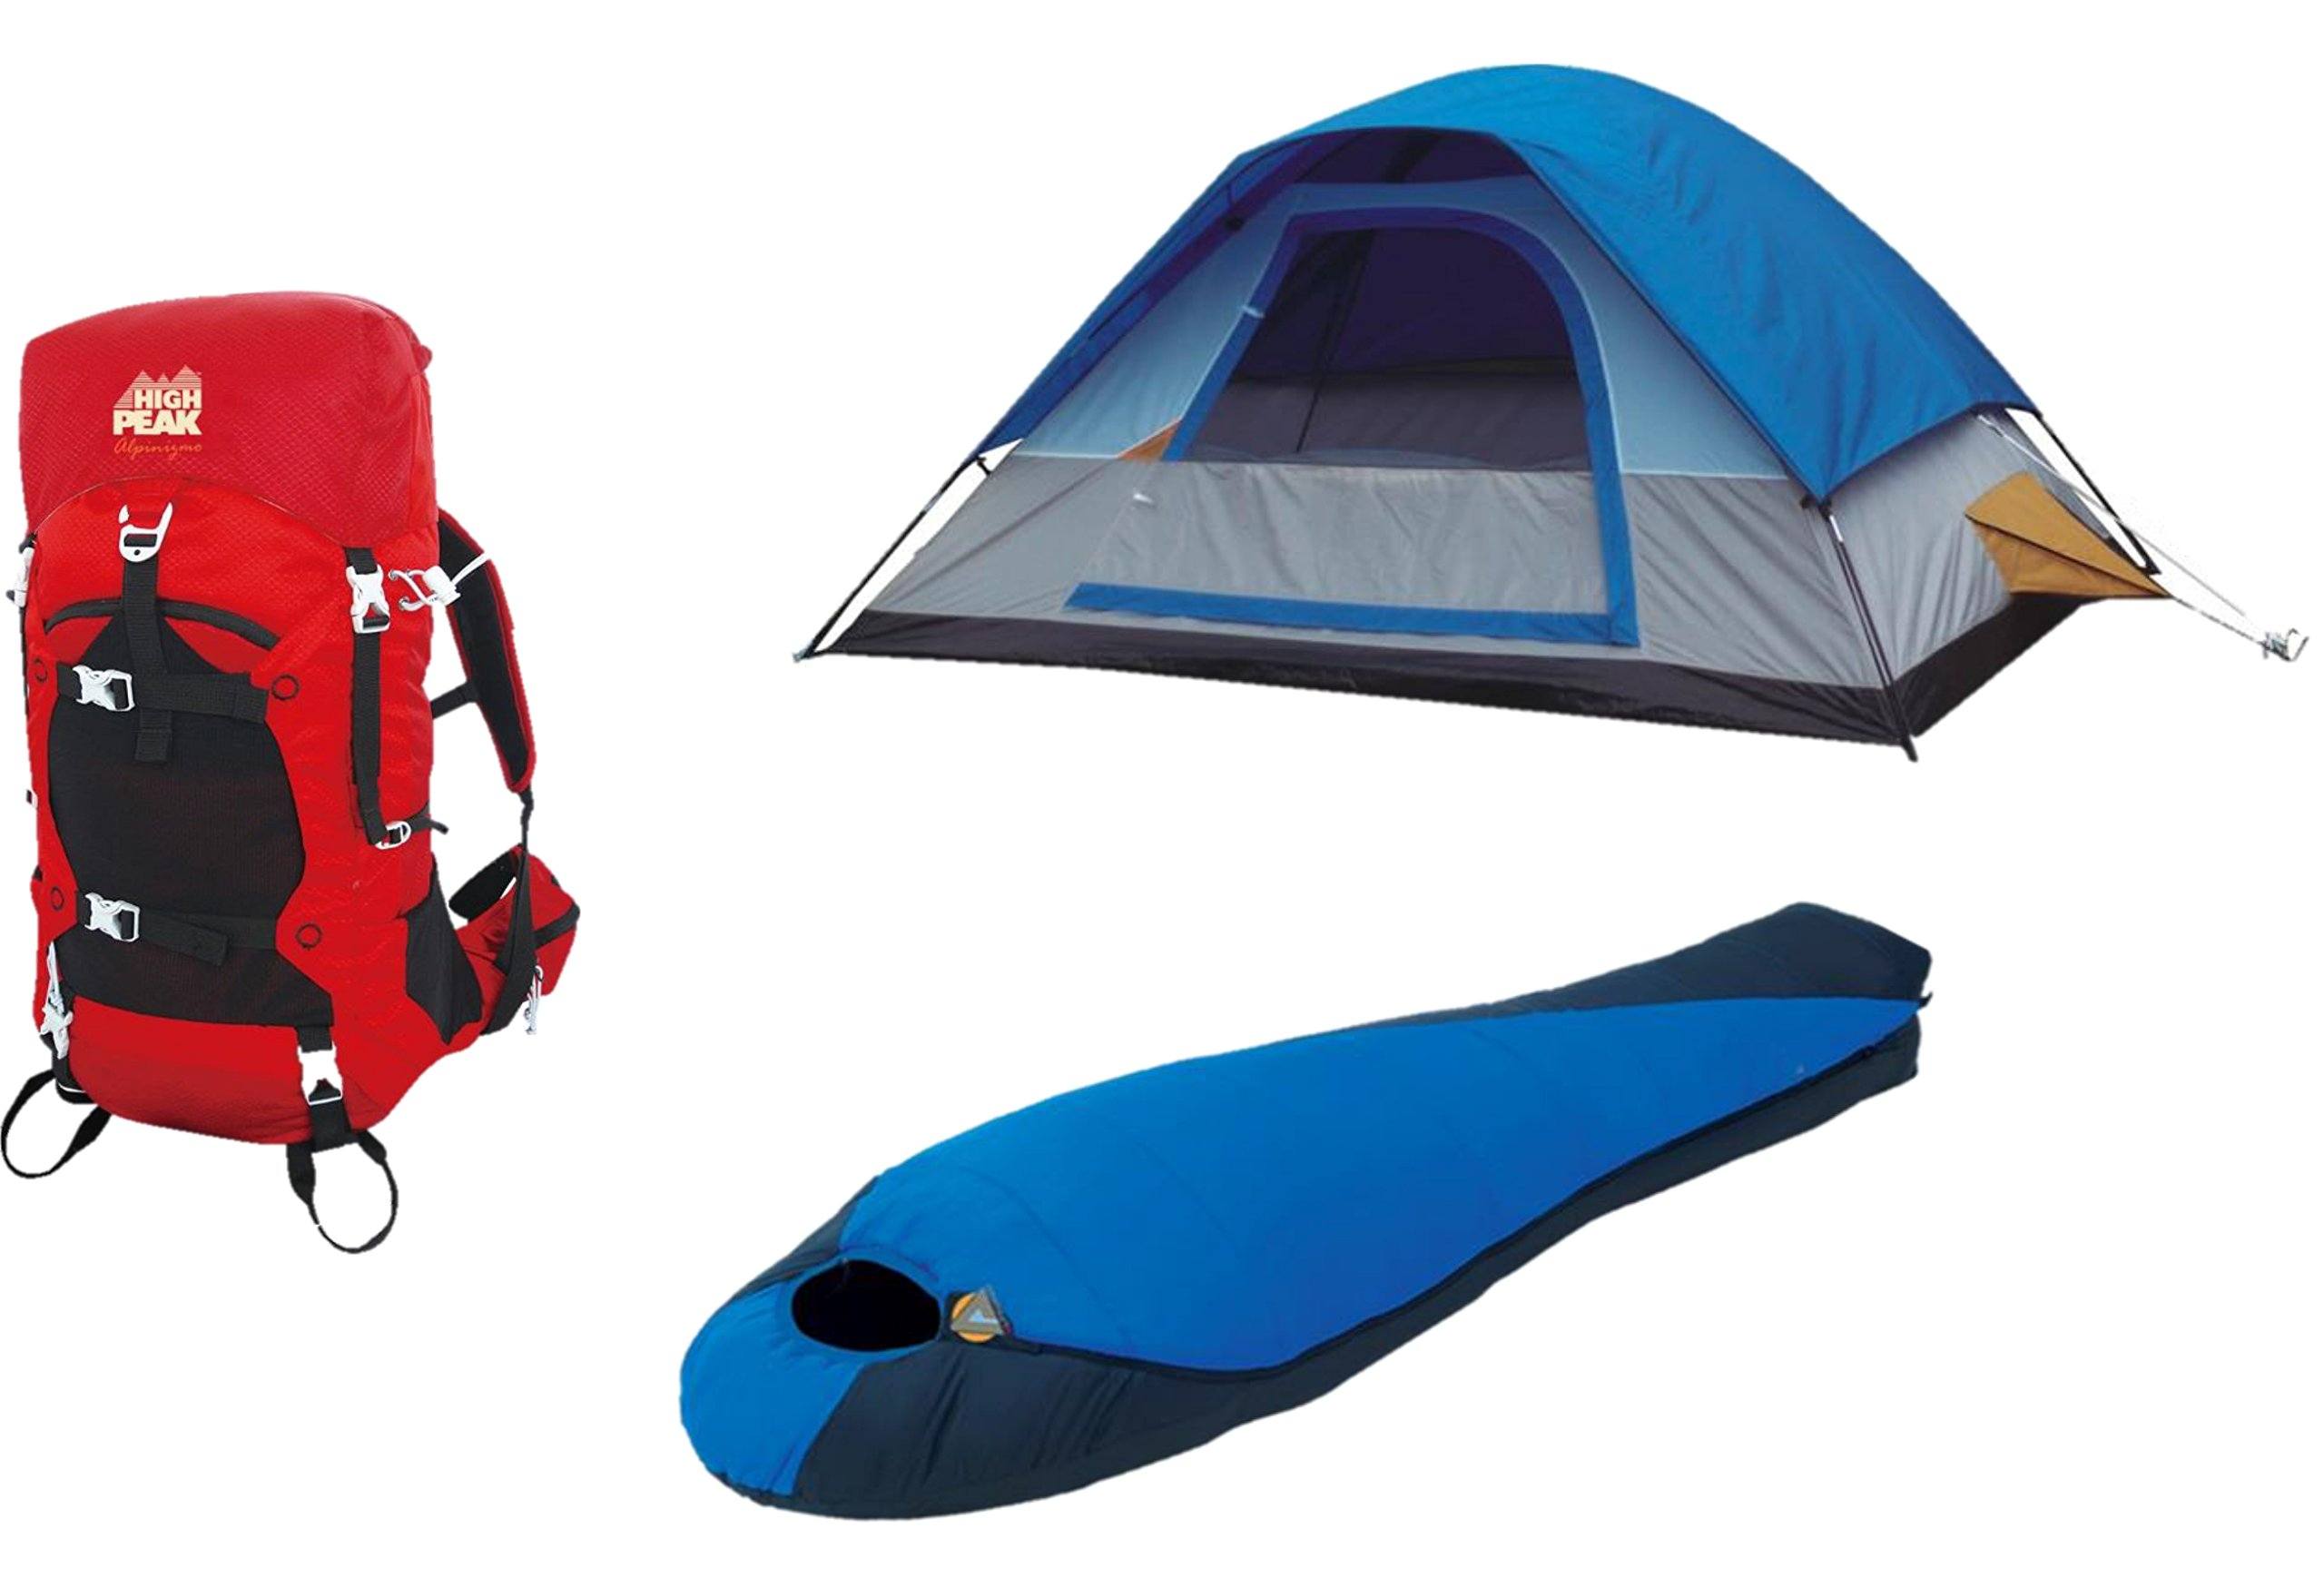 High Peak USA Alpinizmo 40 Liter Hiking Pack 5 Men Tent & Extreme Sleeping Bag, Red/Blue, One Size by Alpinizmo